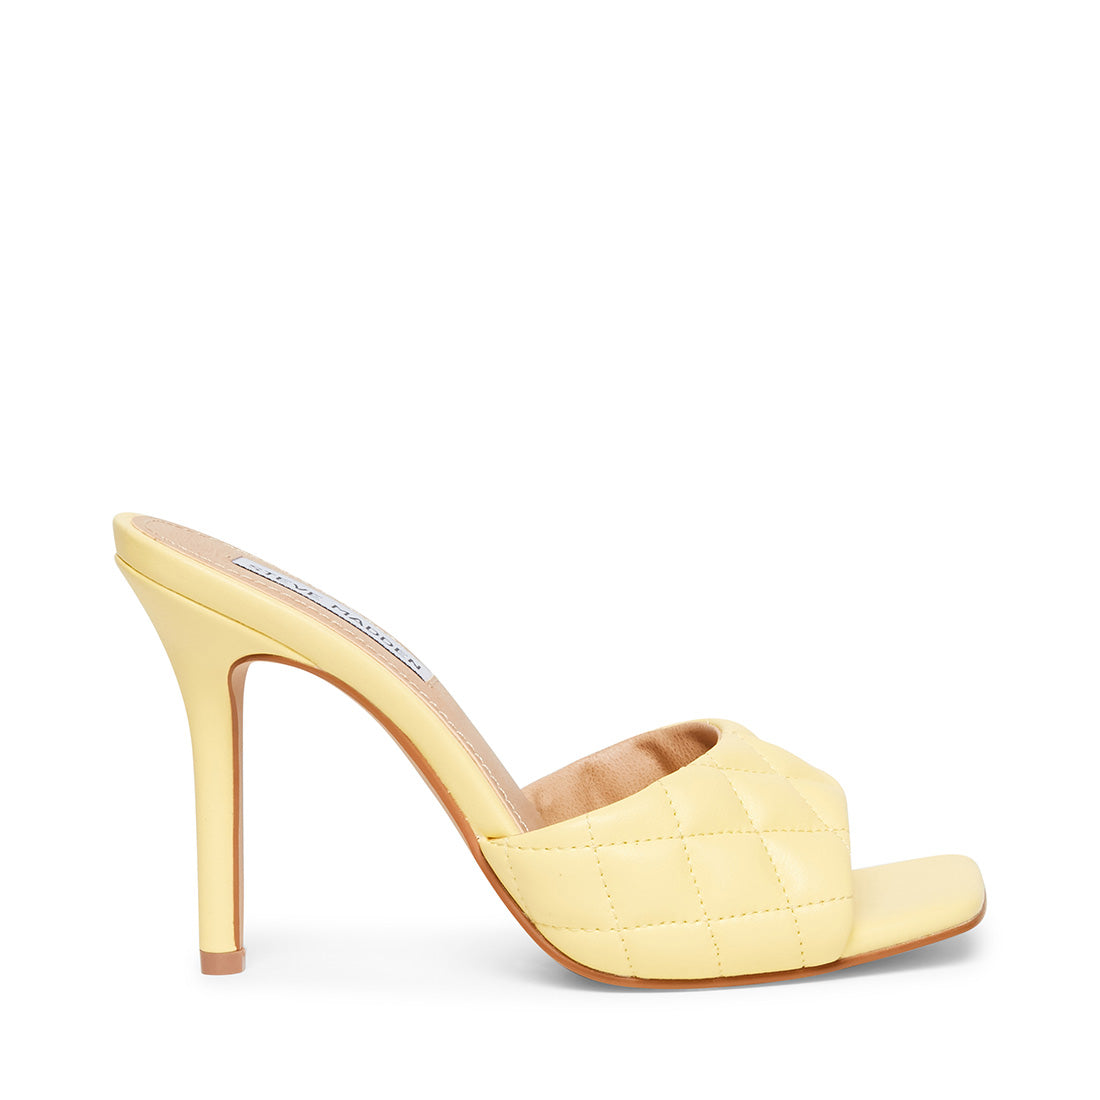 SIGNIFY YELLOW – Steve Madden